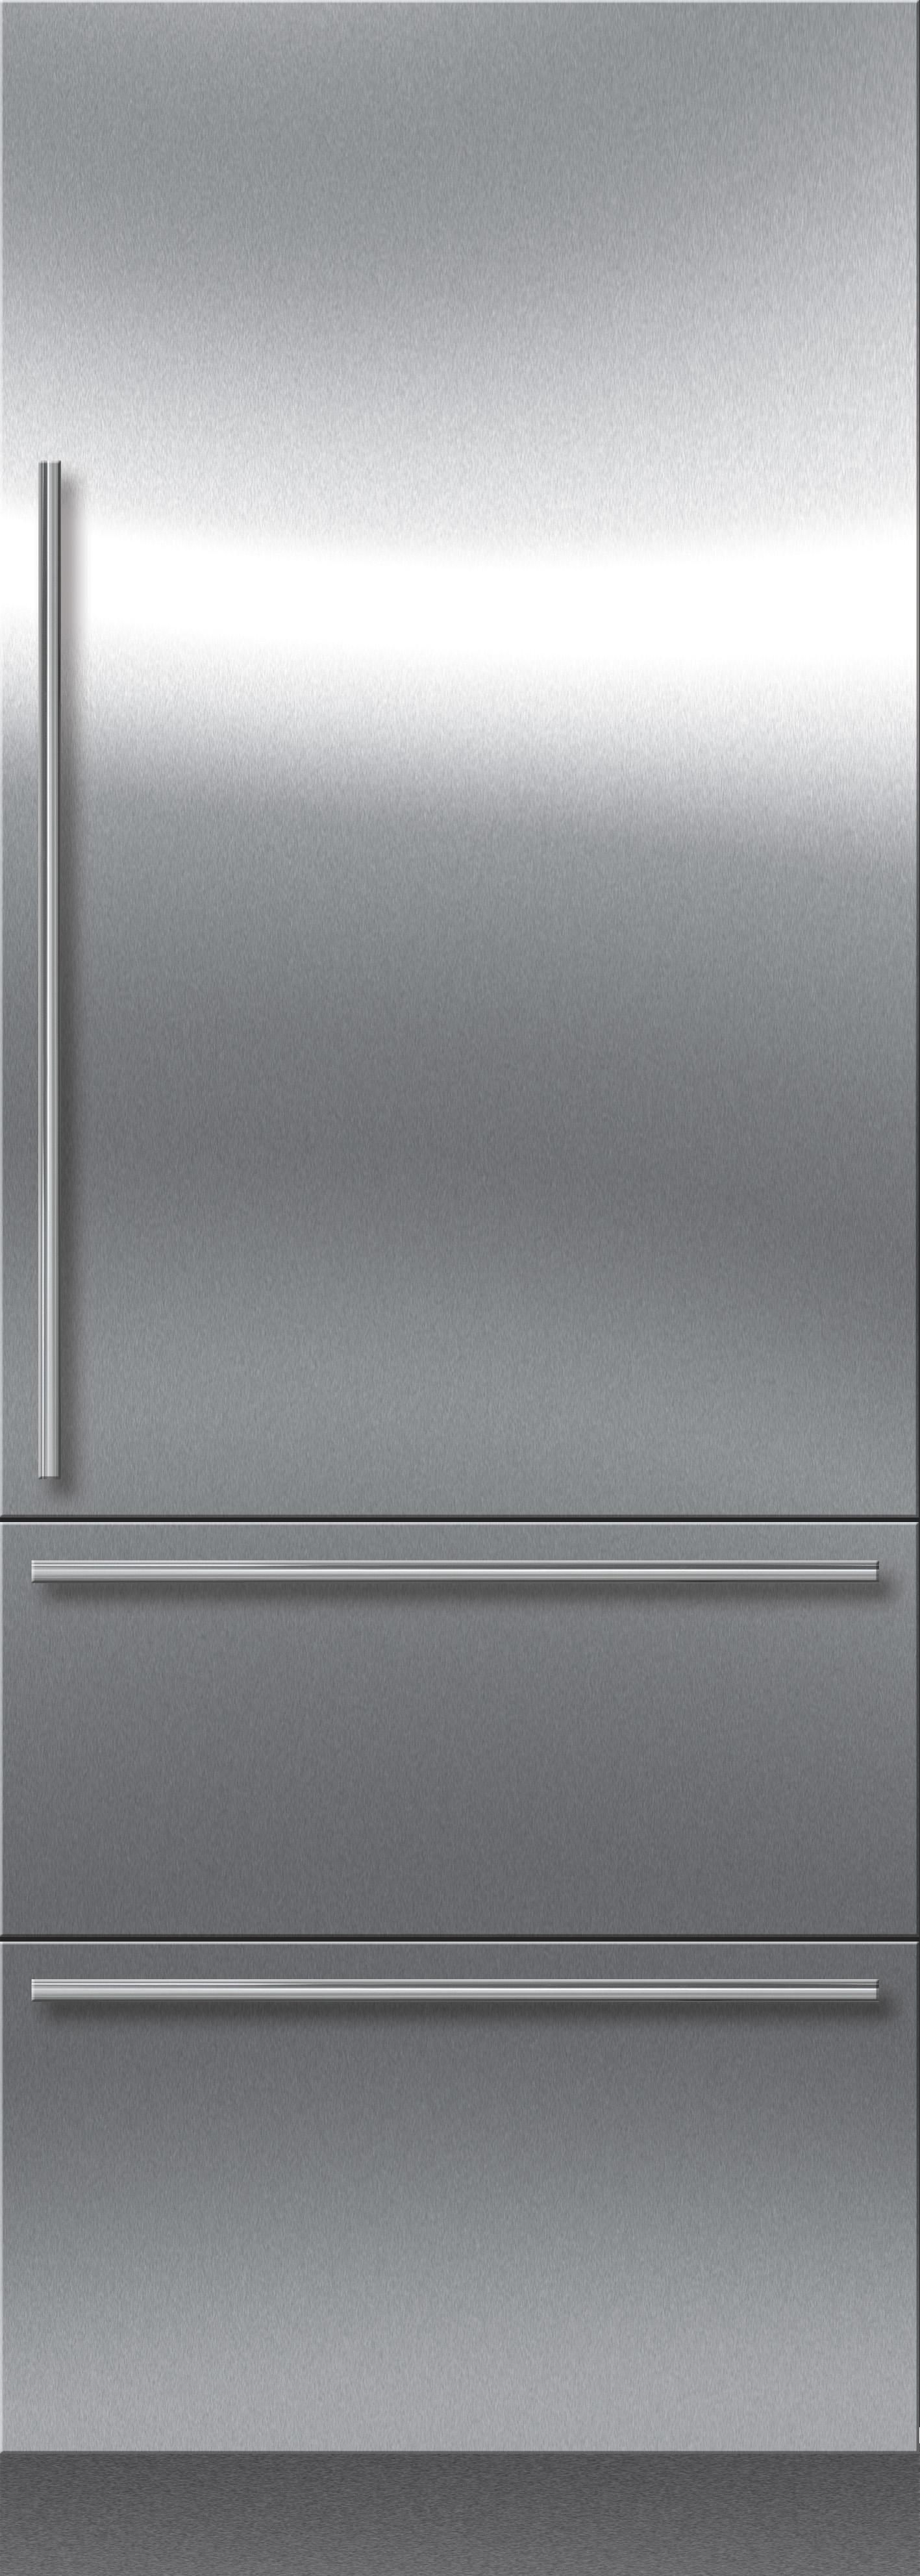 """Integrated Refrigeration 36"""" Refrigerator/Freezer by Sub-Zero at Furniture and ApplianceMart"""